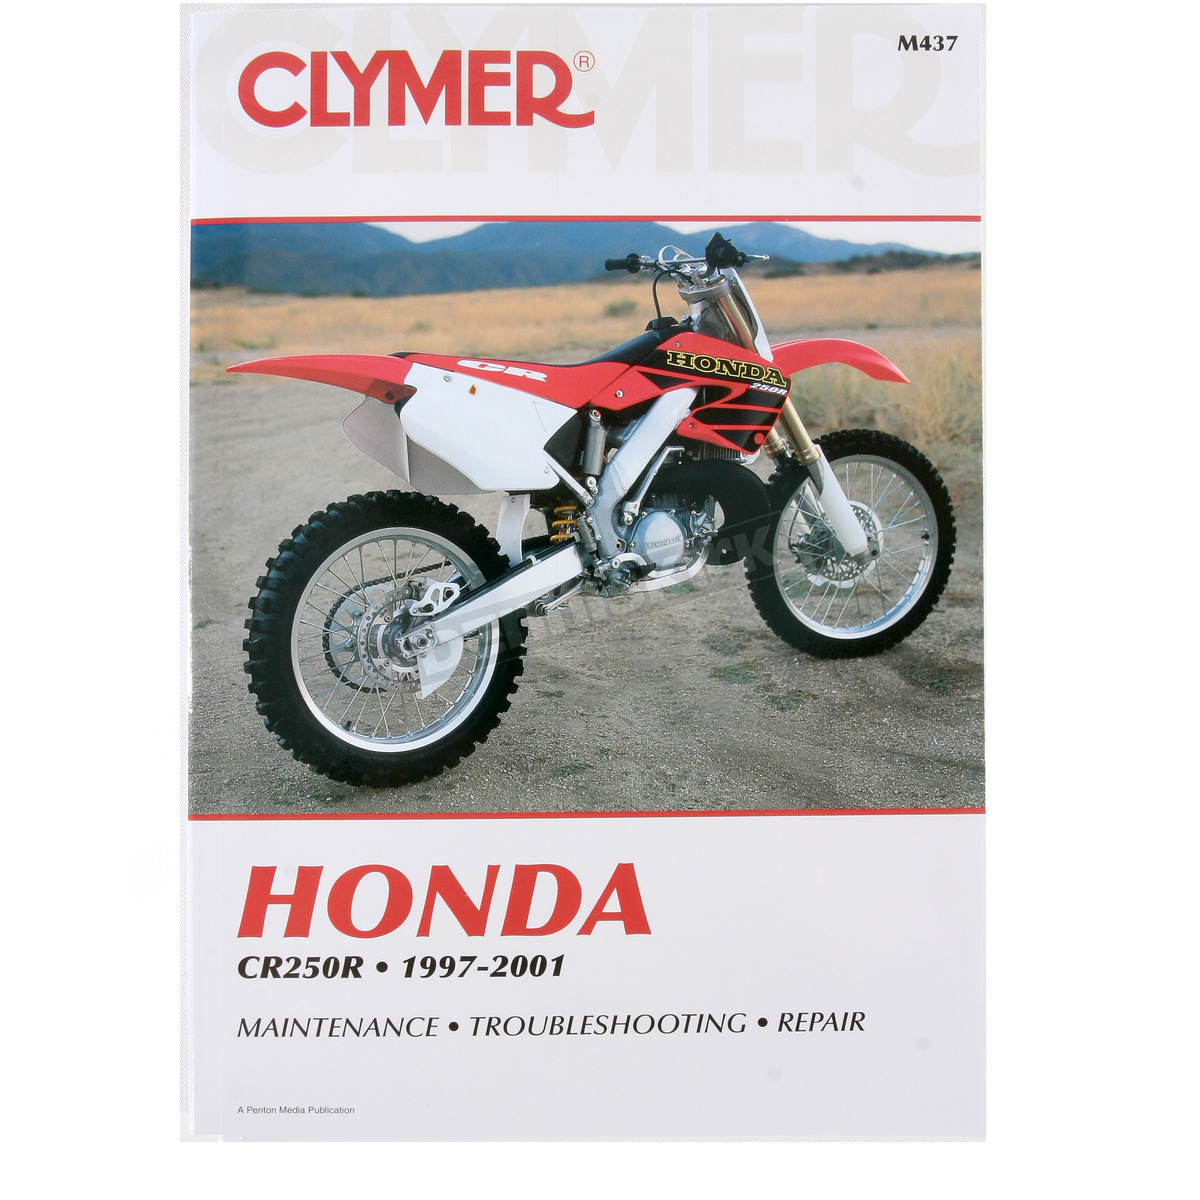 Clymer Honda Repair Manual - M437